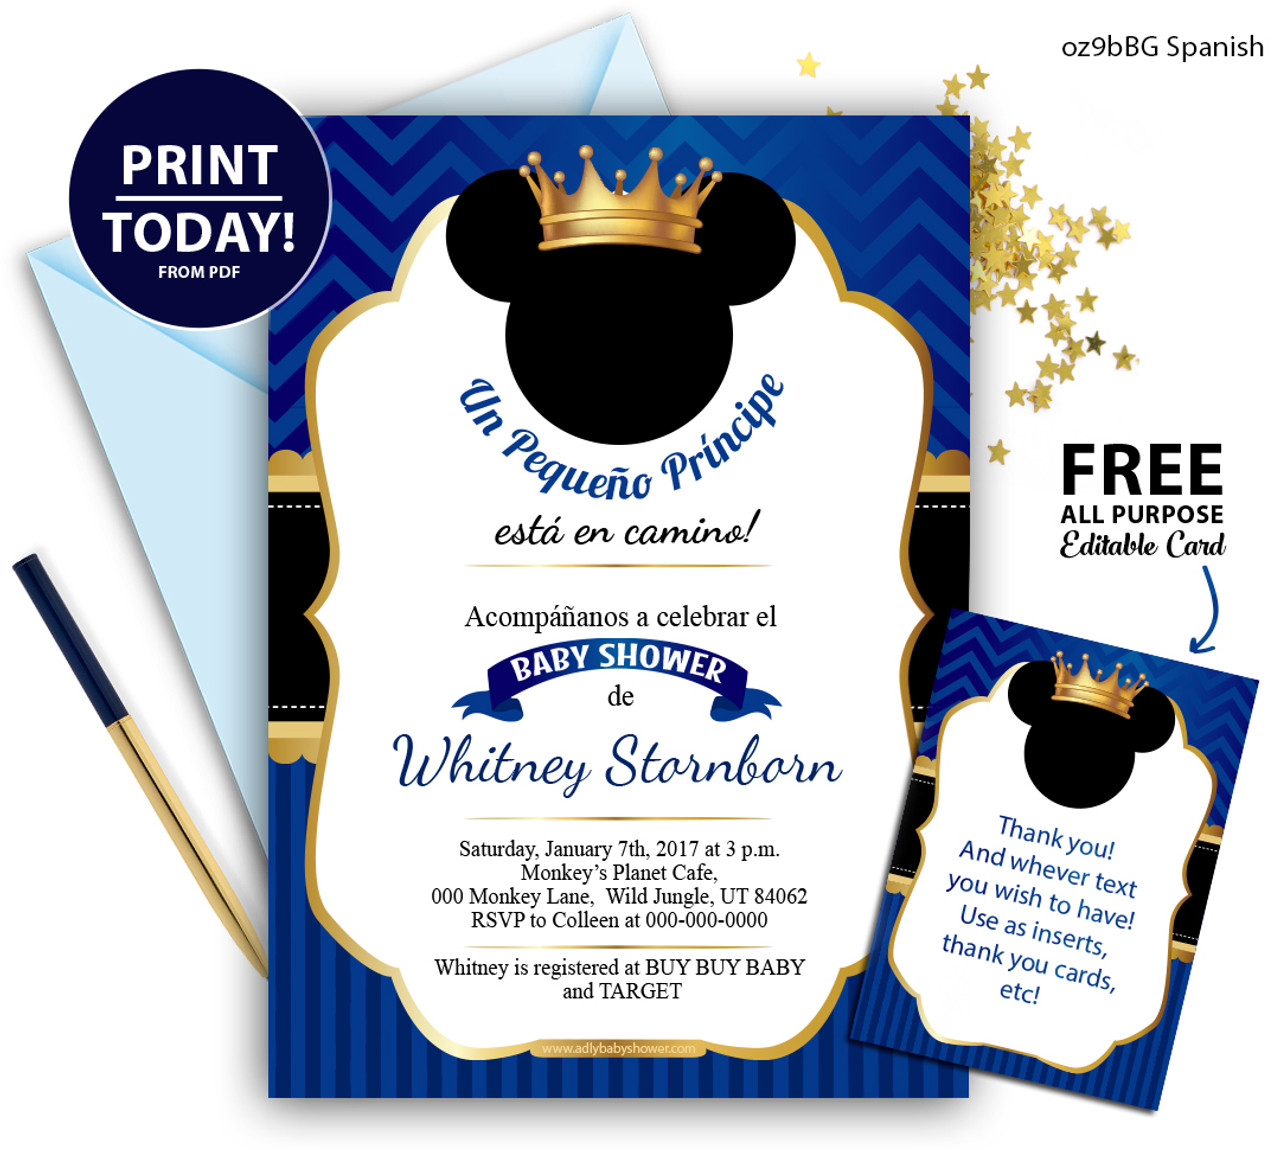 photograph about Free Printable Prince Baby Shower Invitations named Spanish Pirnce Mikcey kid shower invitation gold crown Royal blue invitation